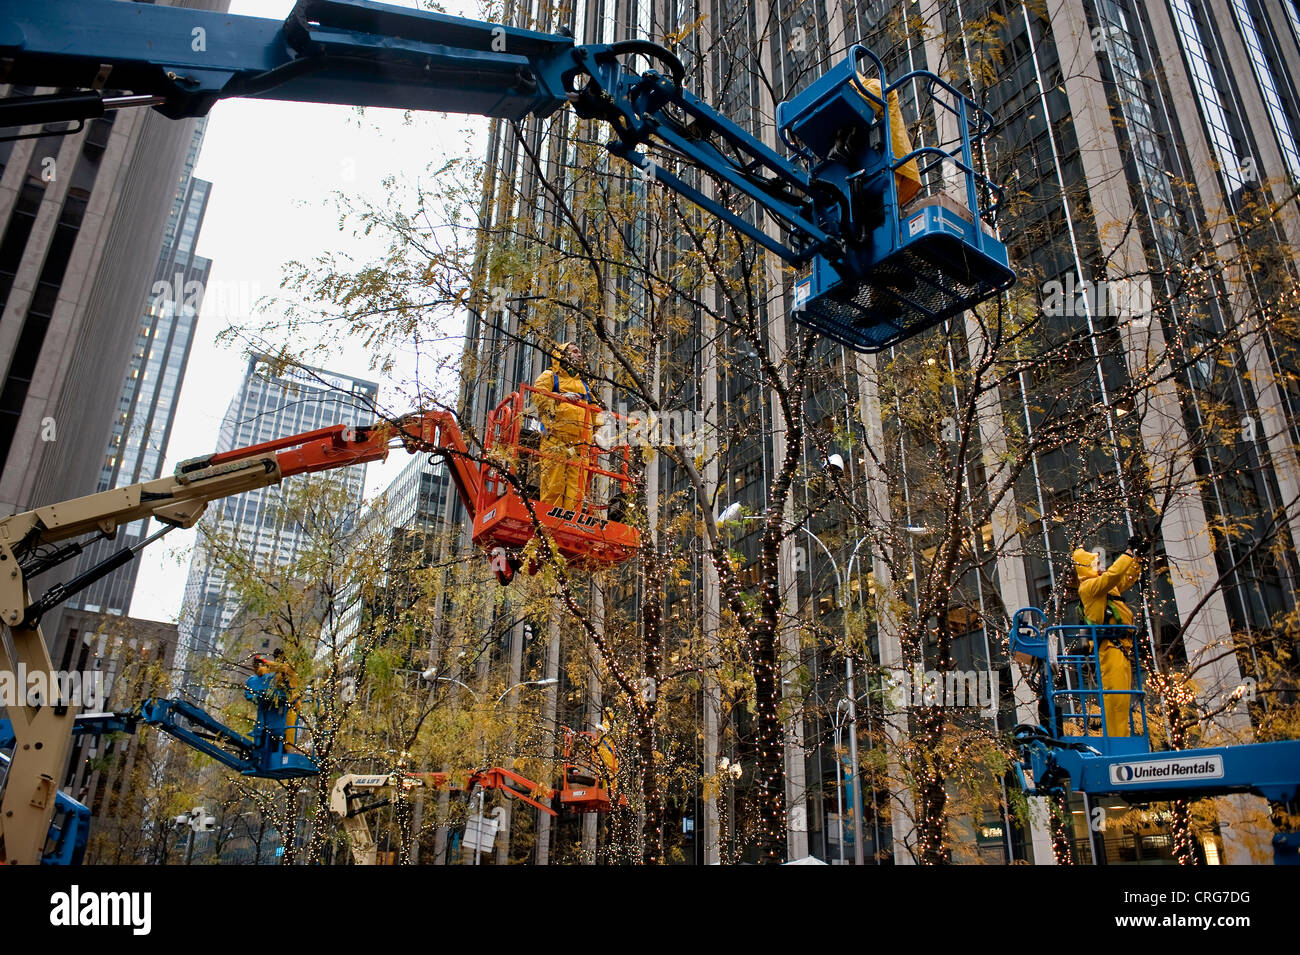 Workers wearing rain jackets are hoisted into the air on lifts as they attach holiday lights to trees. - Stock Image